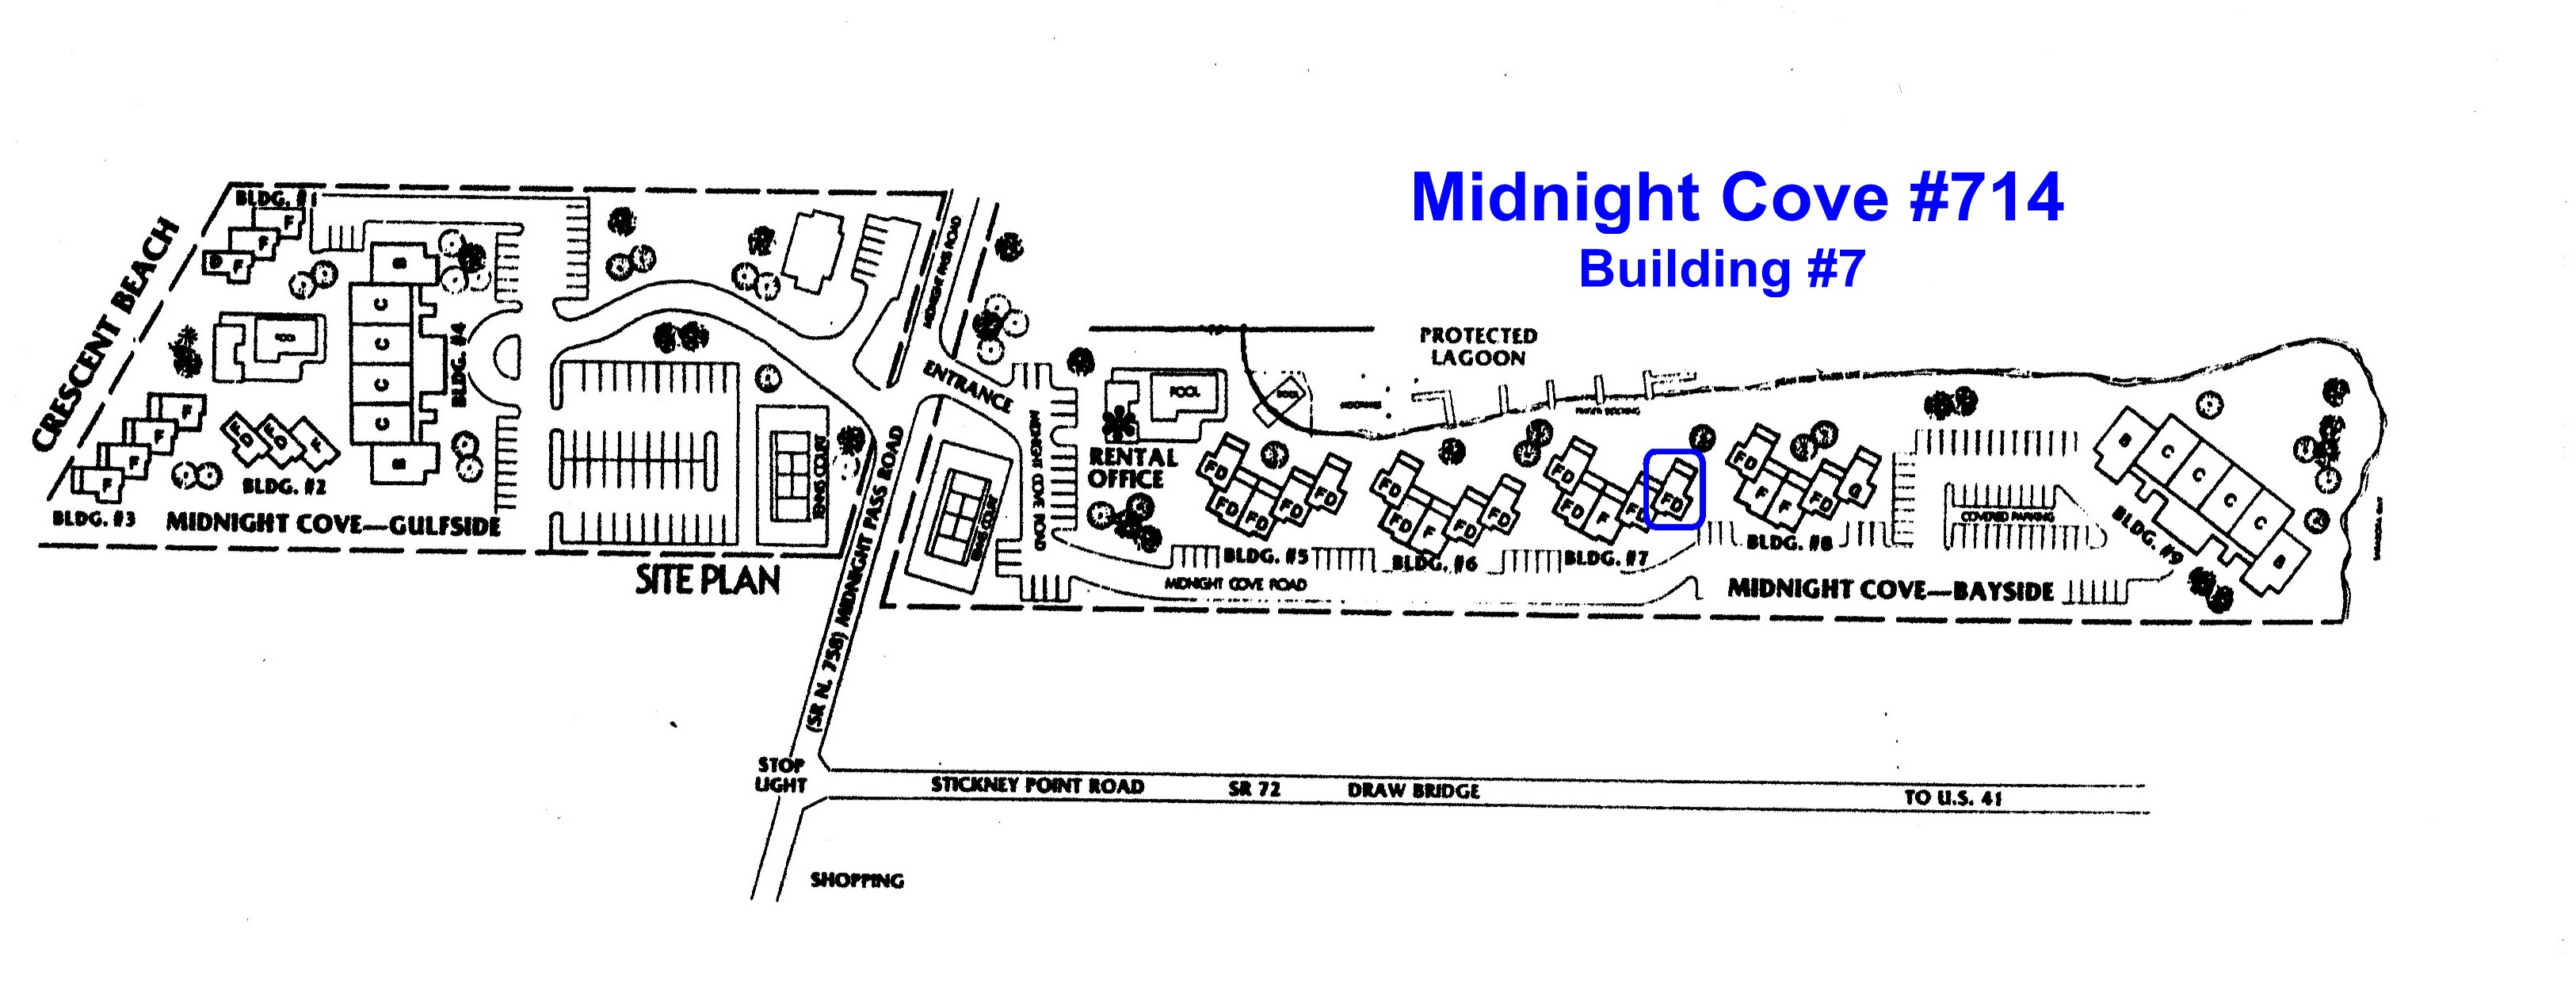 Midnight Cove #714 is in the 3rd building on the Midnight Cove bayside property, building #7, 5th stack from the left, on the 1st floor.